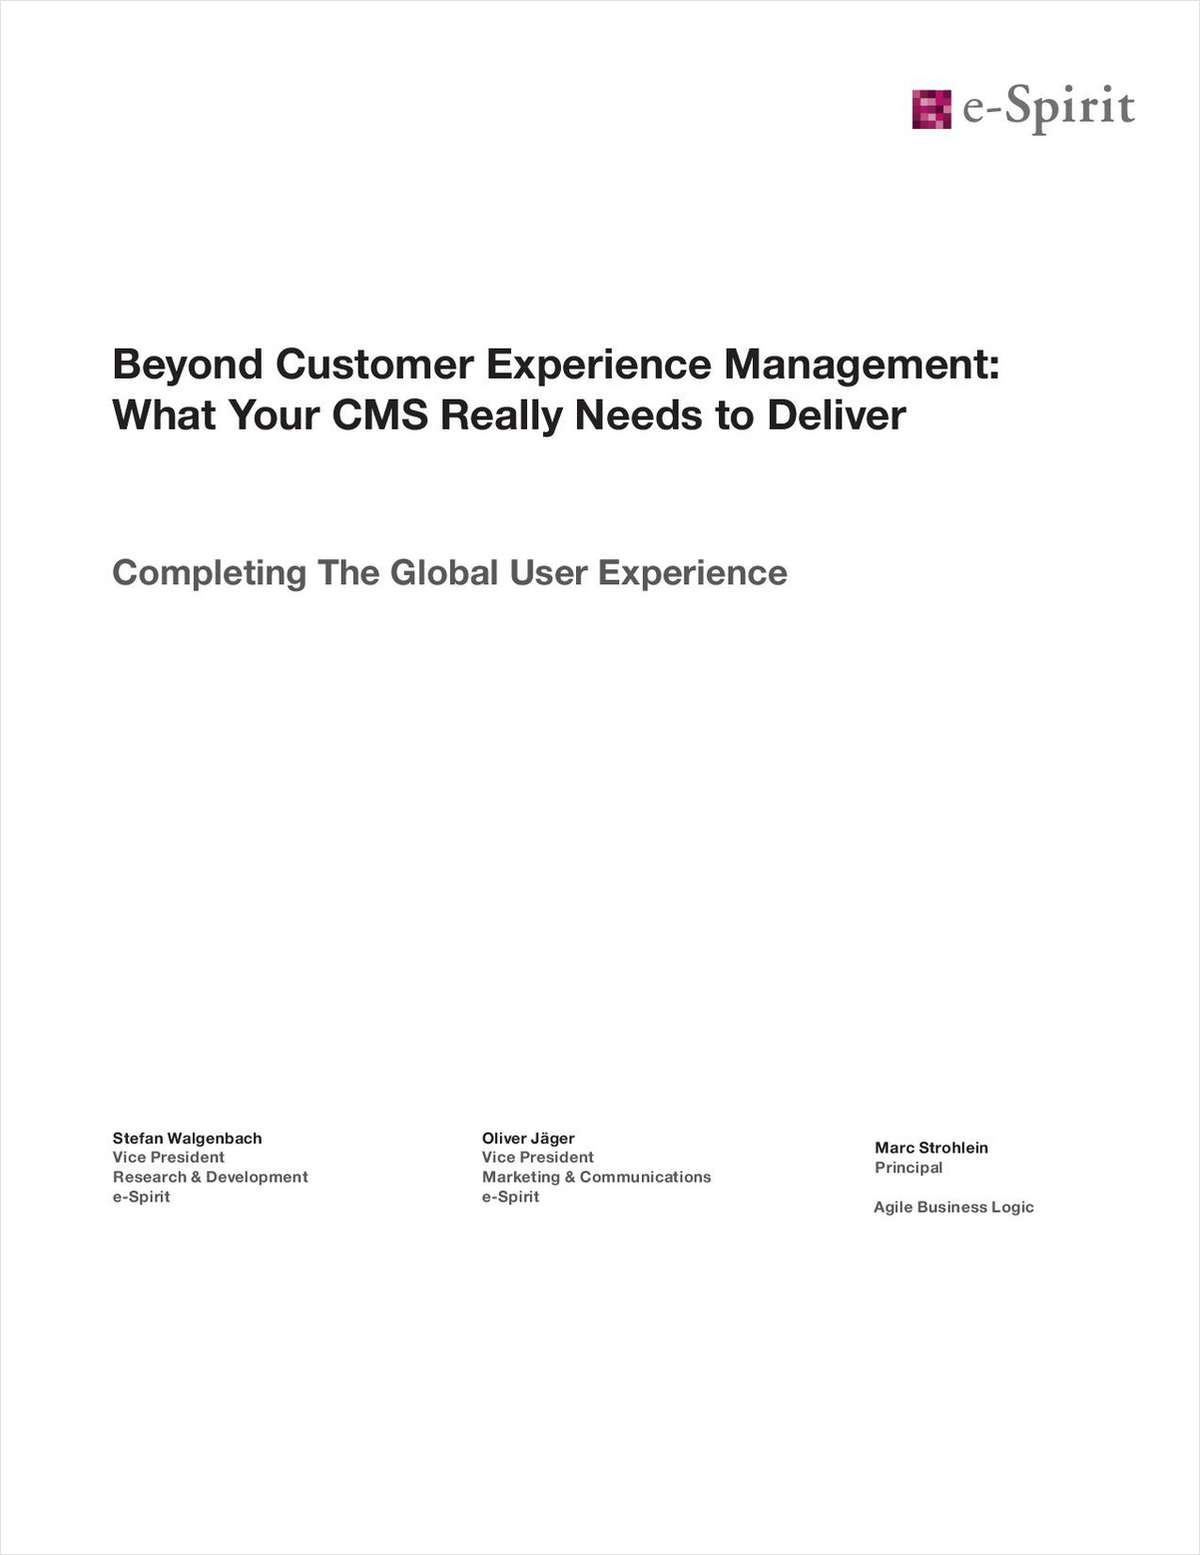 The Less Obvious - But Equally Important - Role of Your CMS